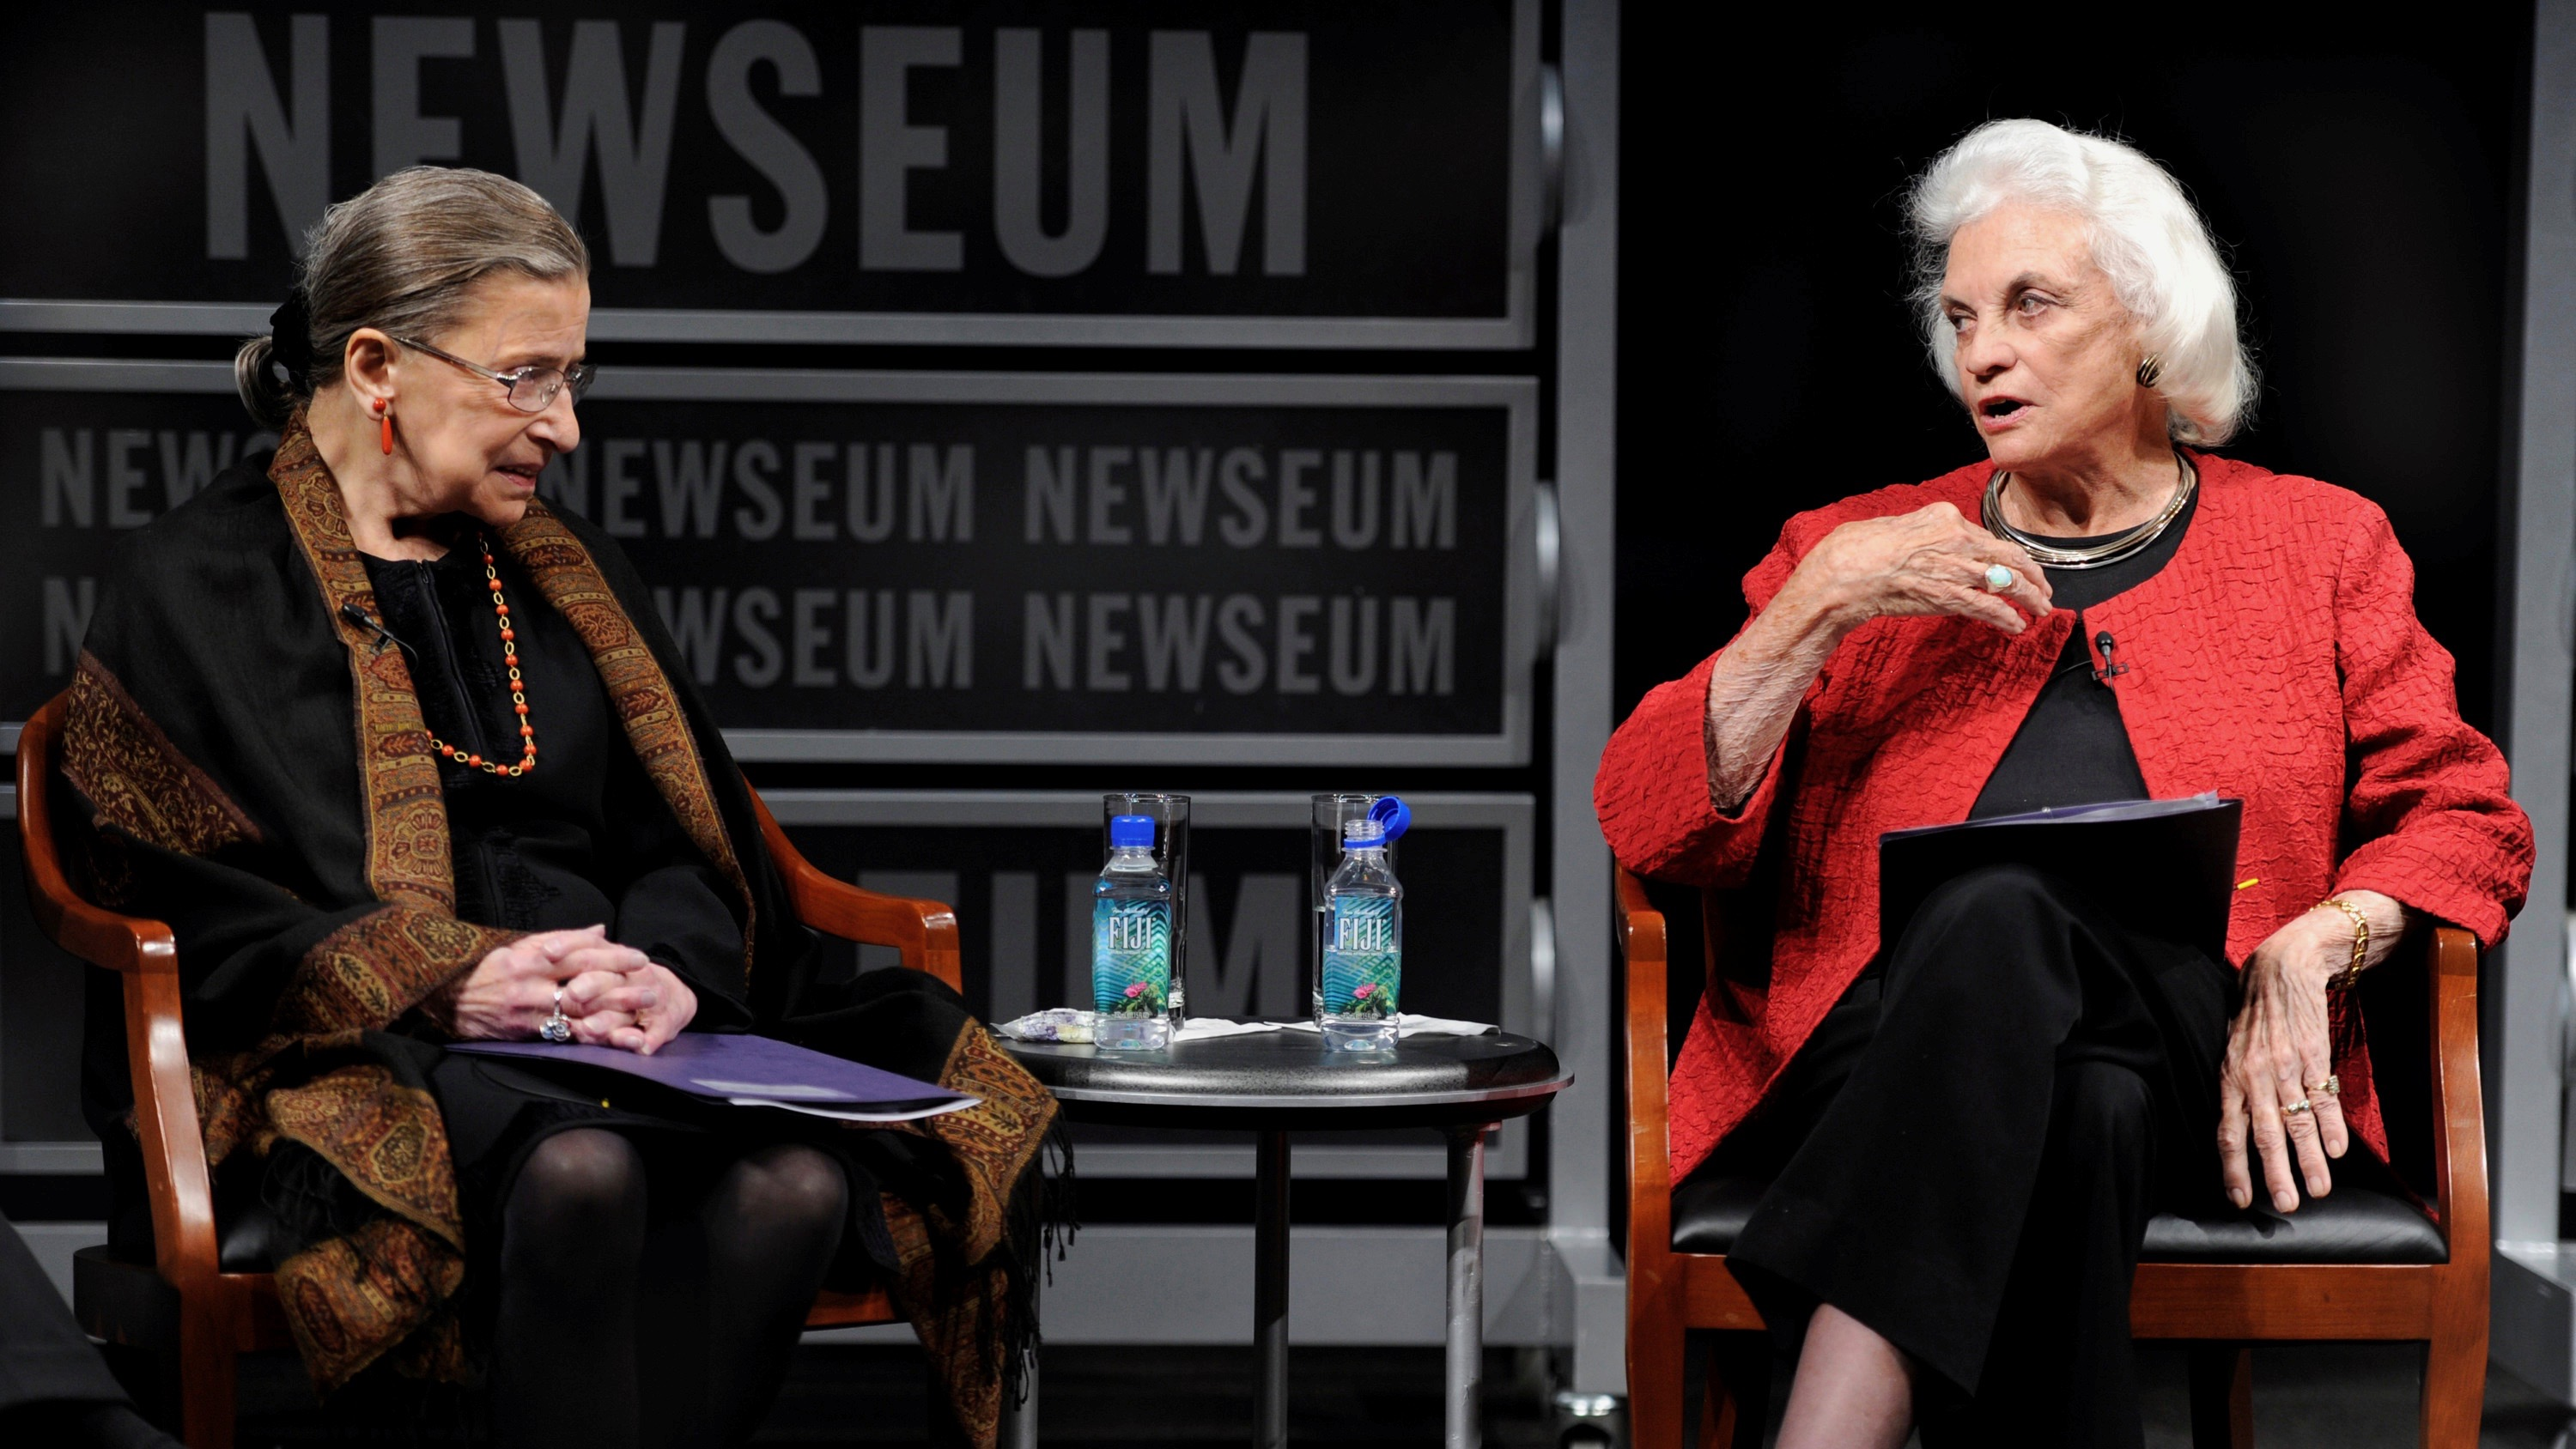 Giants of the law, Ruth Bader Ginsburg and Sandra Day O'Connor.